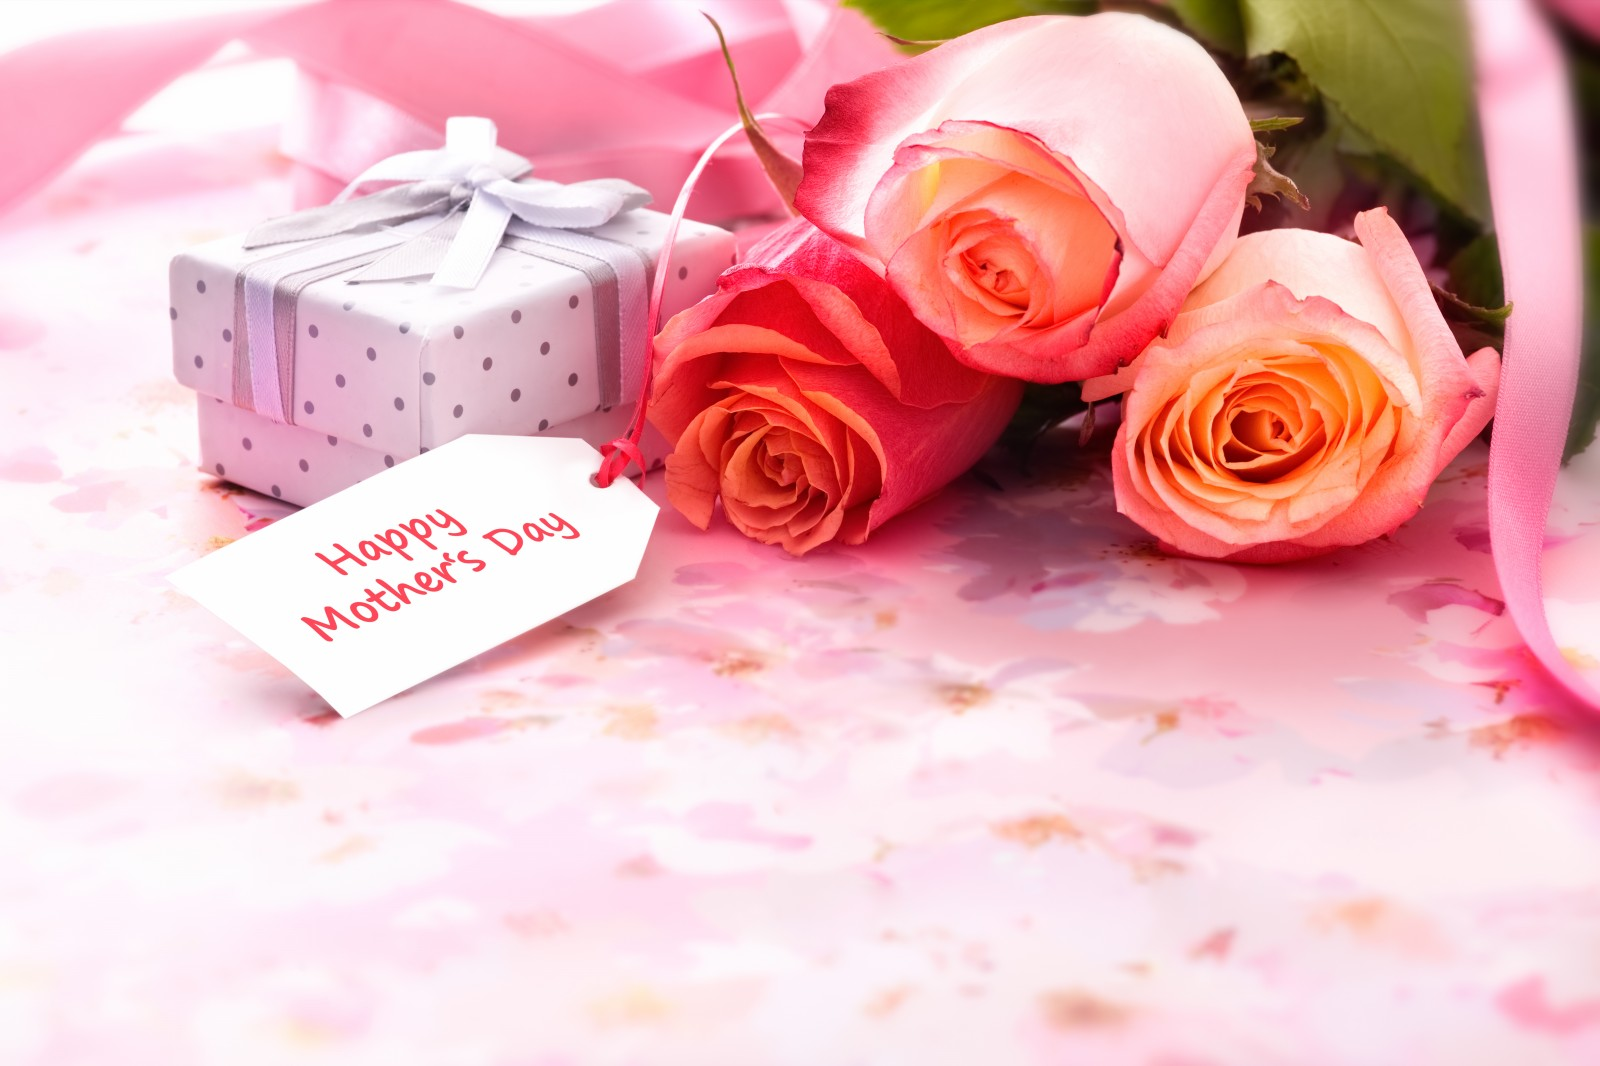 A Happy Mothers Day Message Caregivers and Mothers